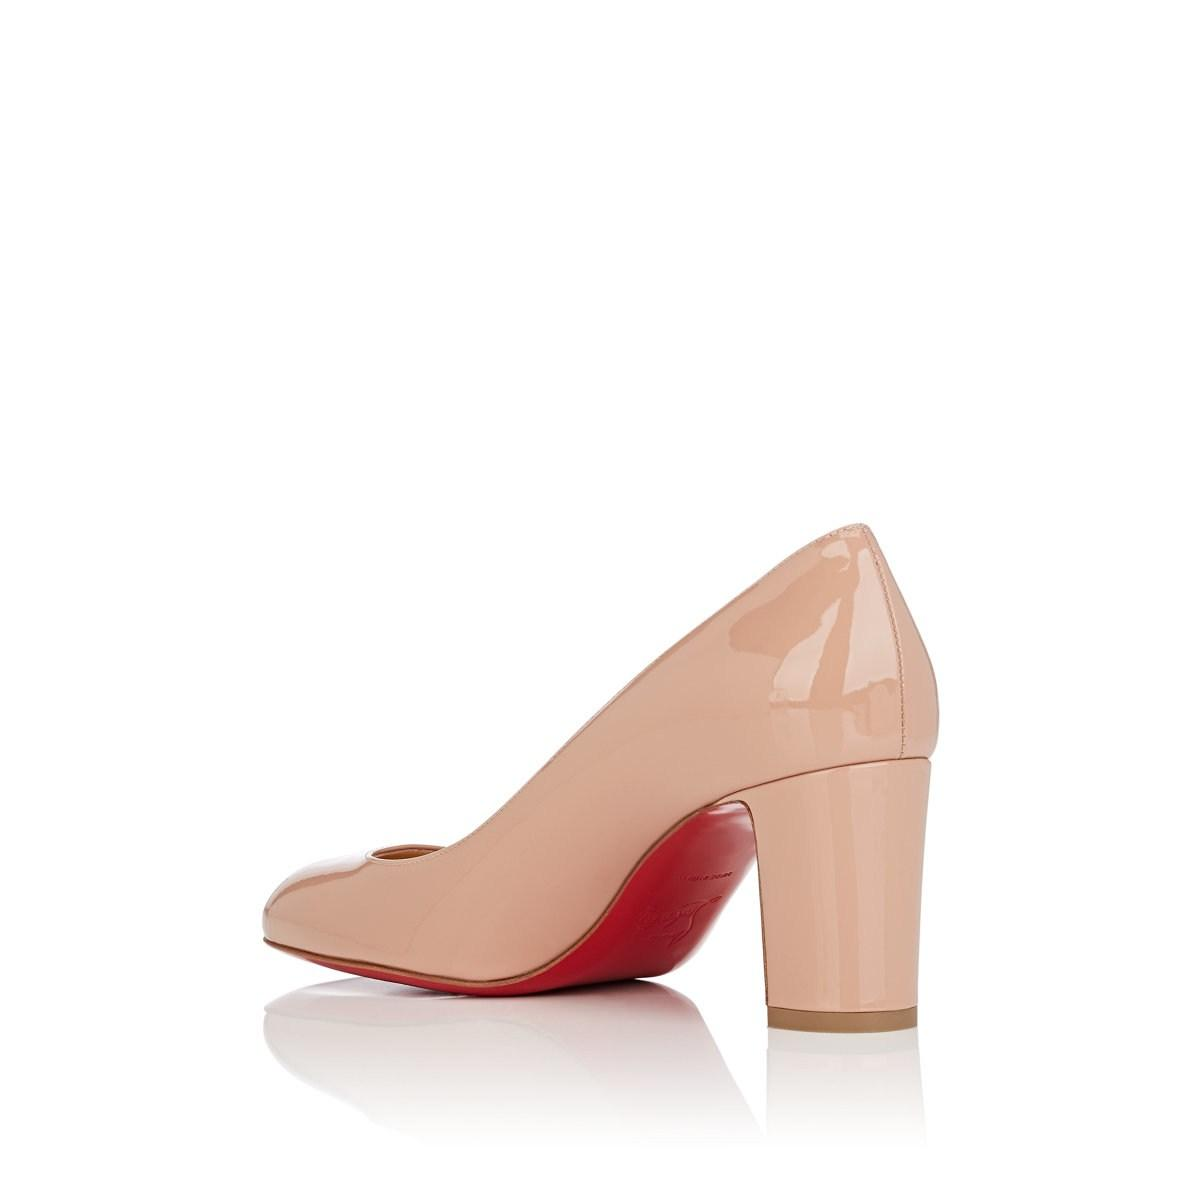 superior quality b1079 c1717 Lyst - Christian Louboutin Cadrilla Patent Leather Pumps in Pink